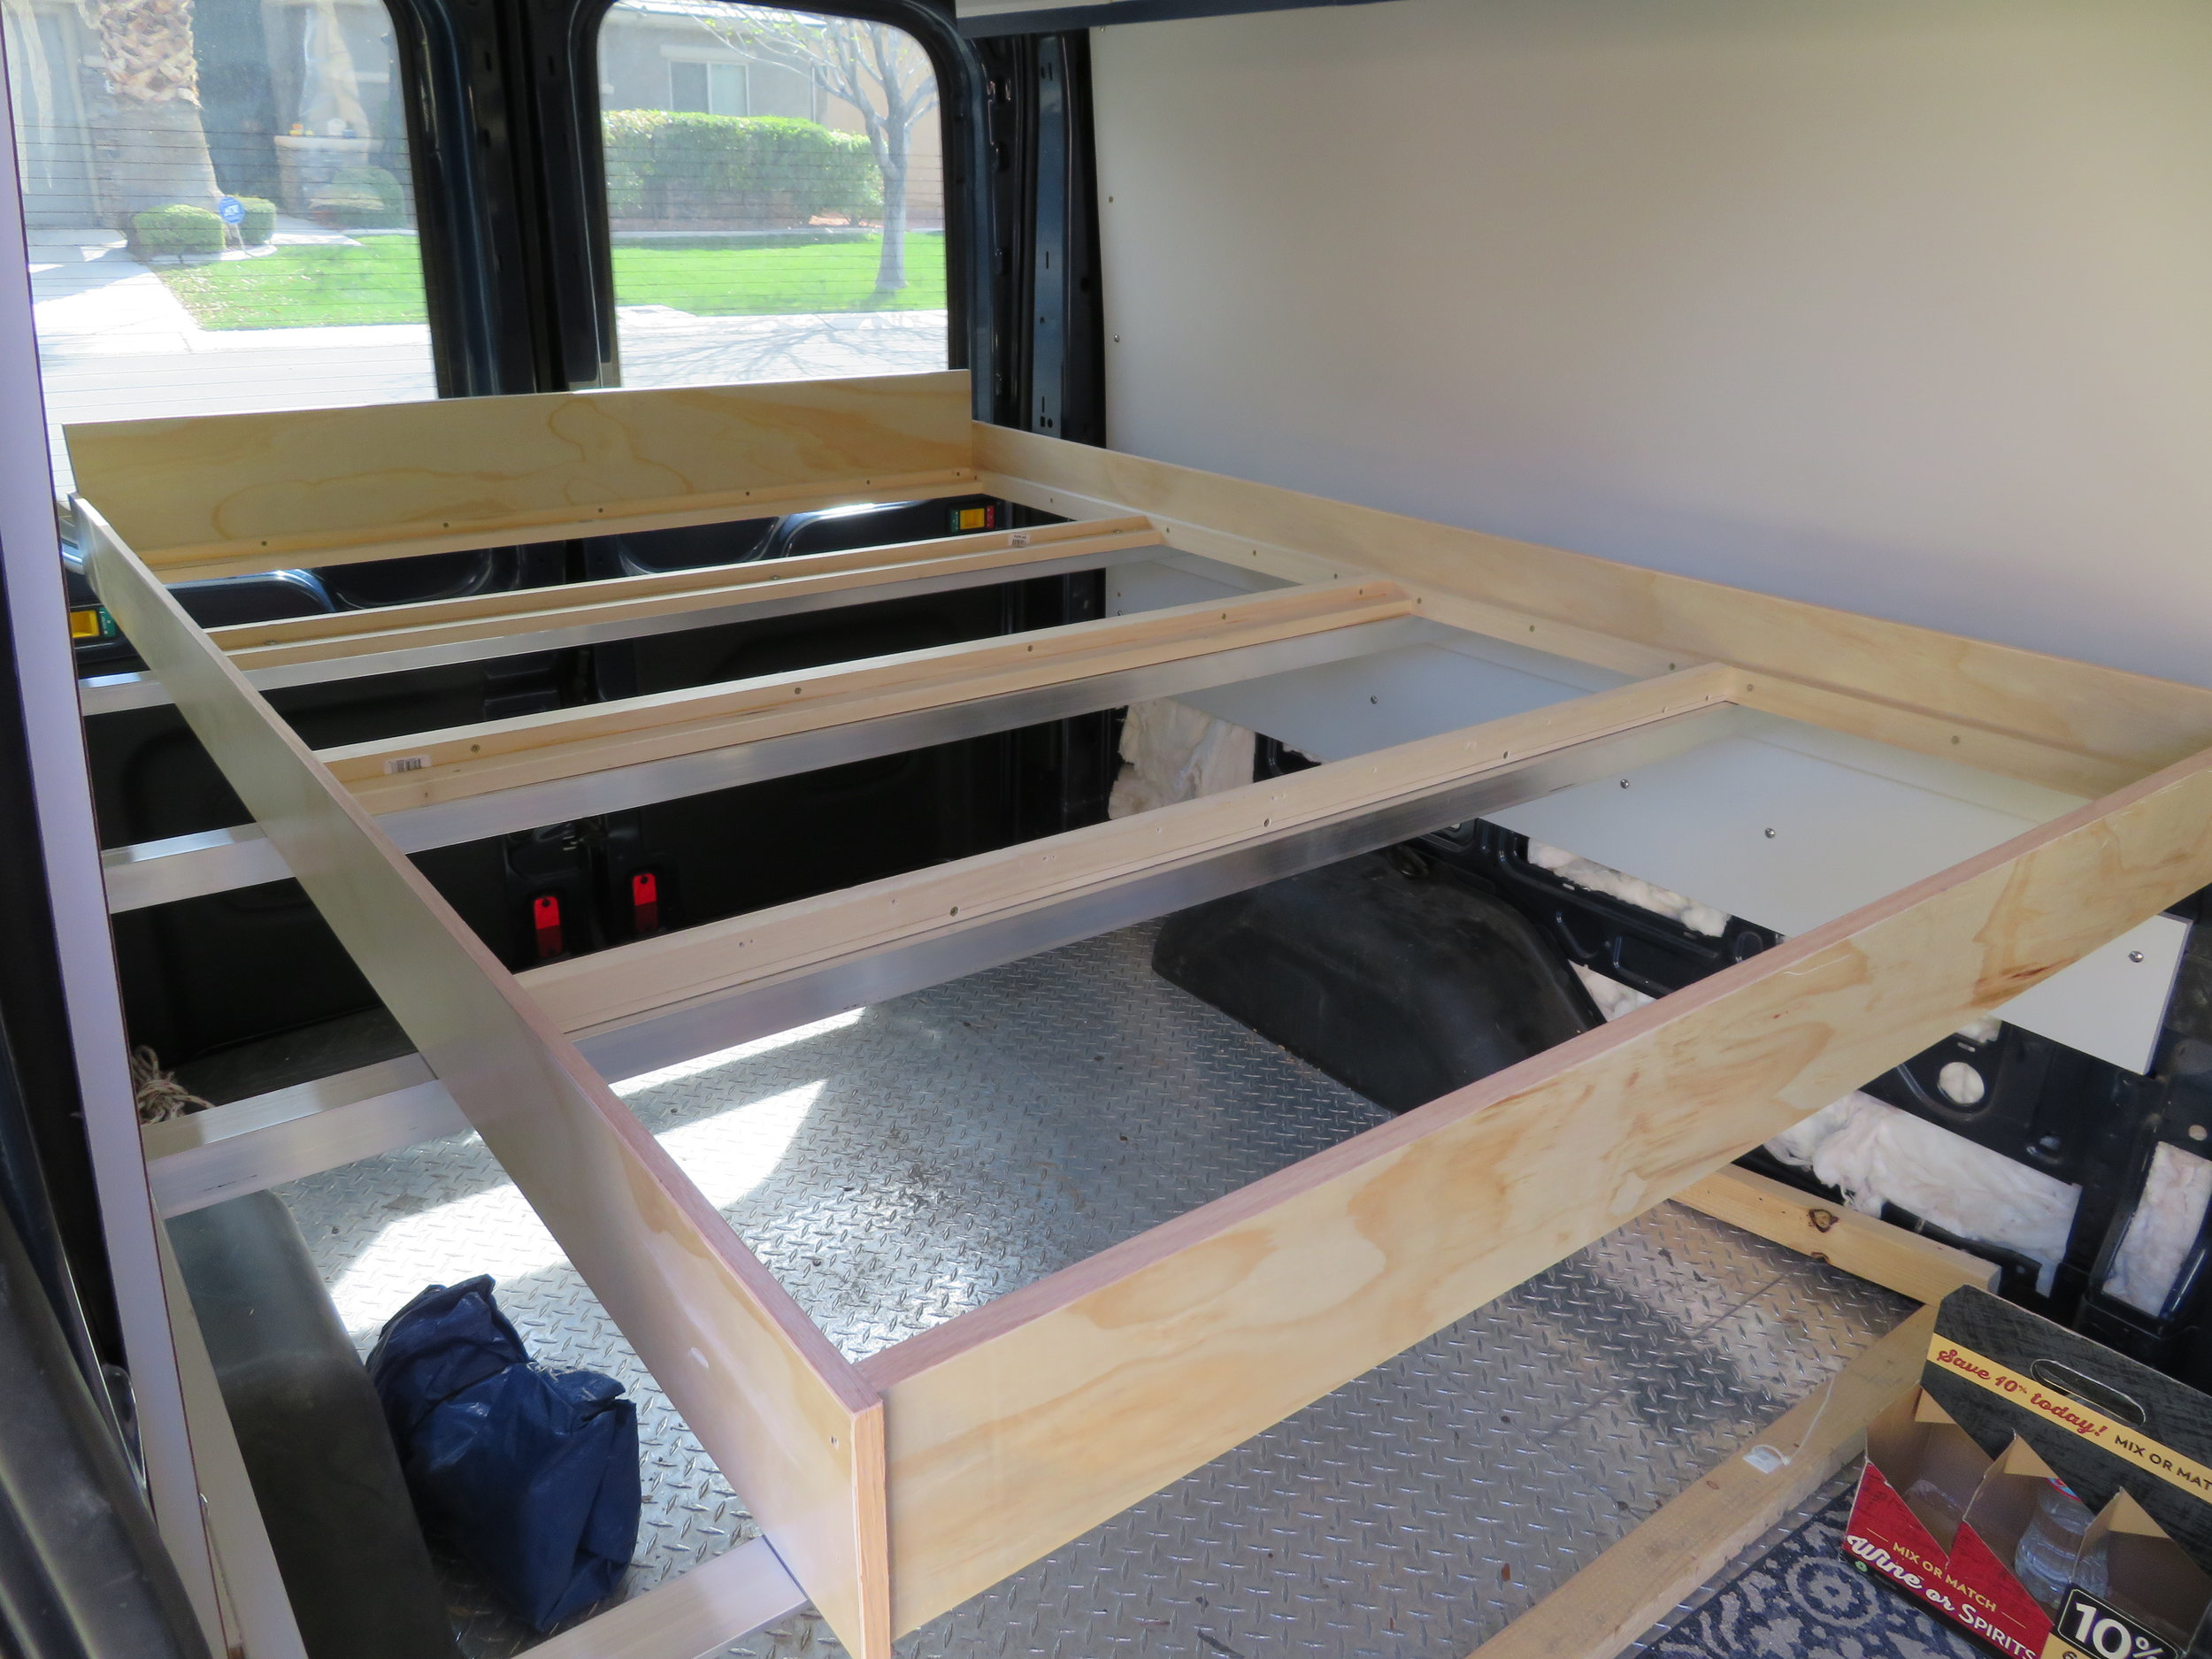 Bed frame in place